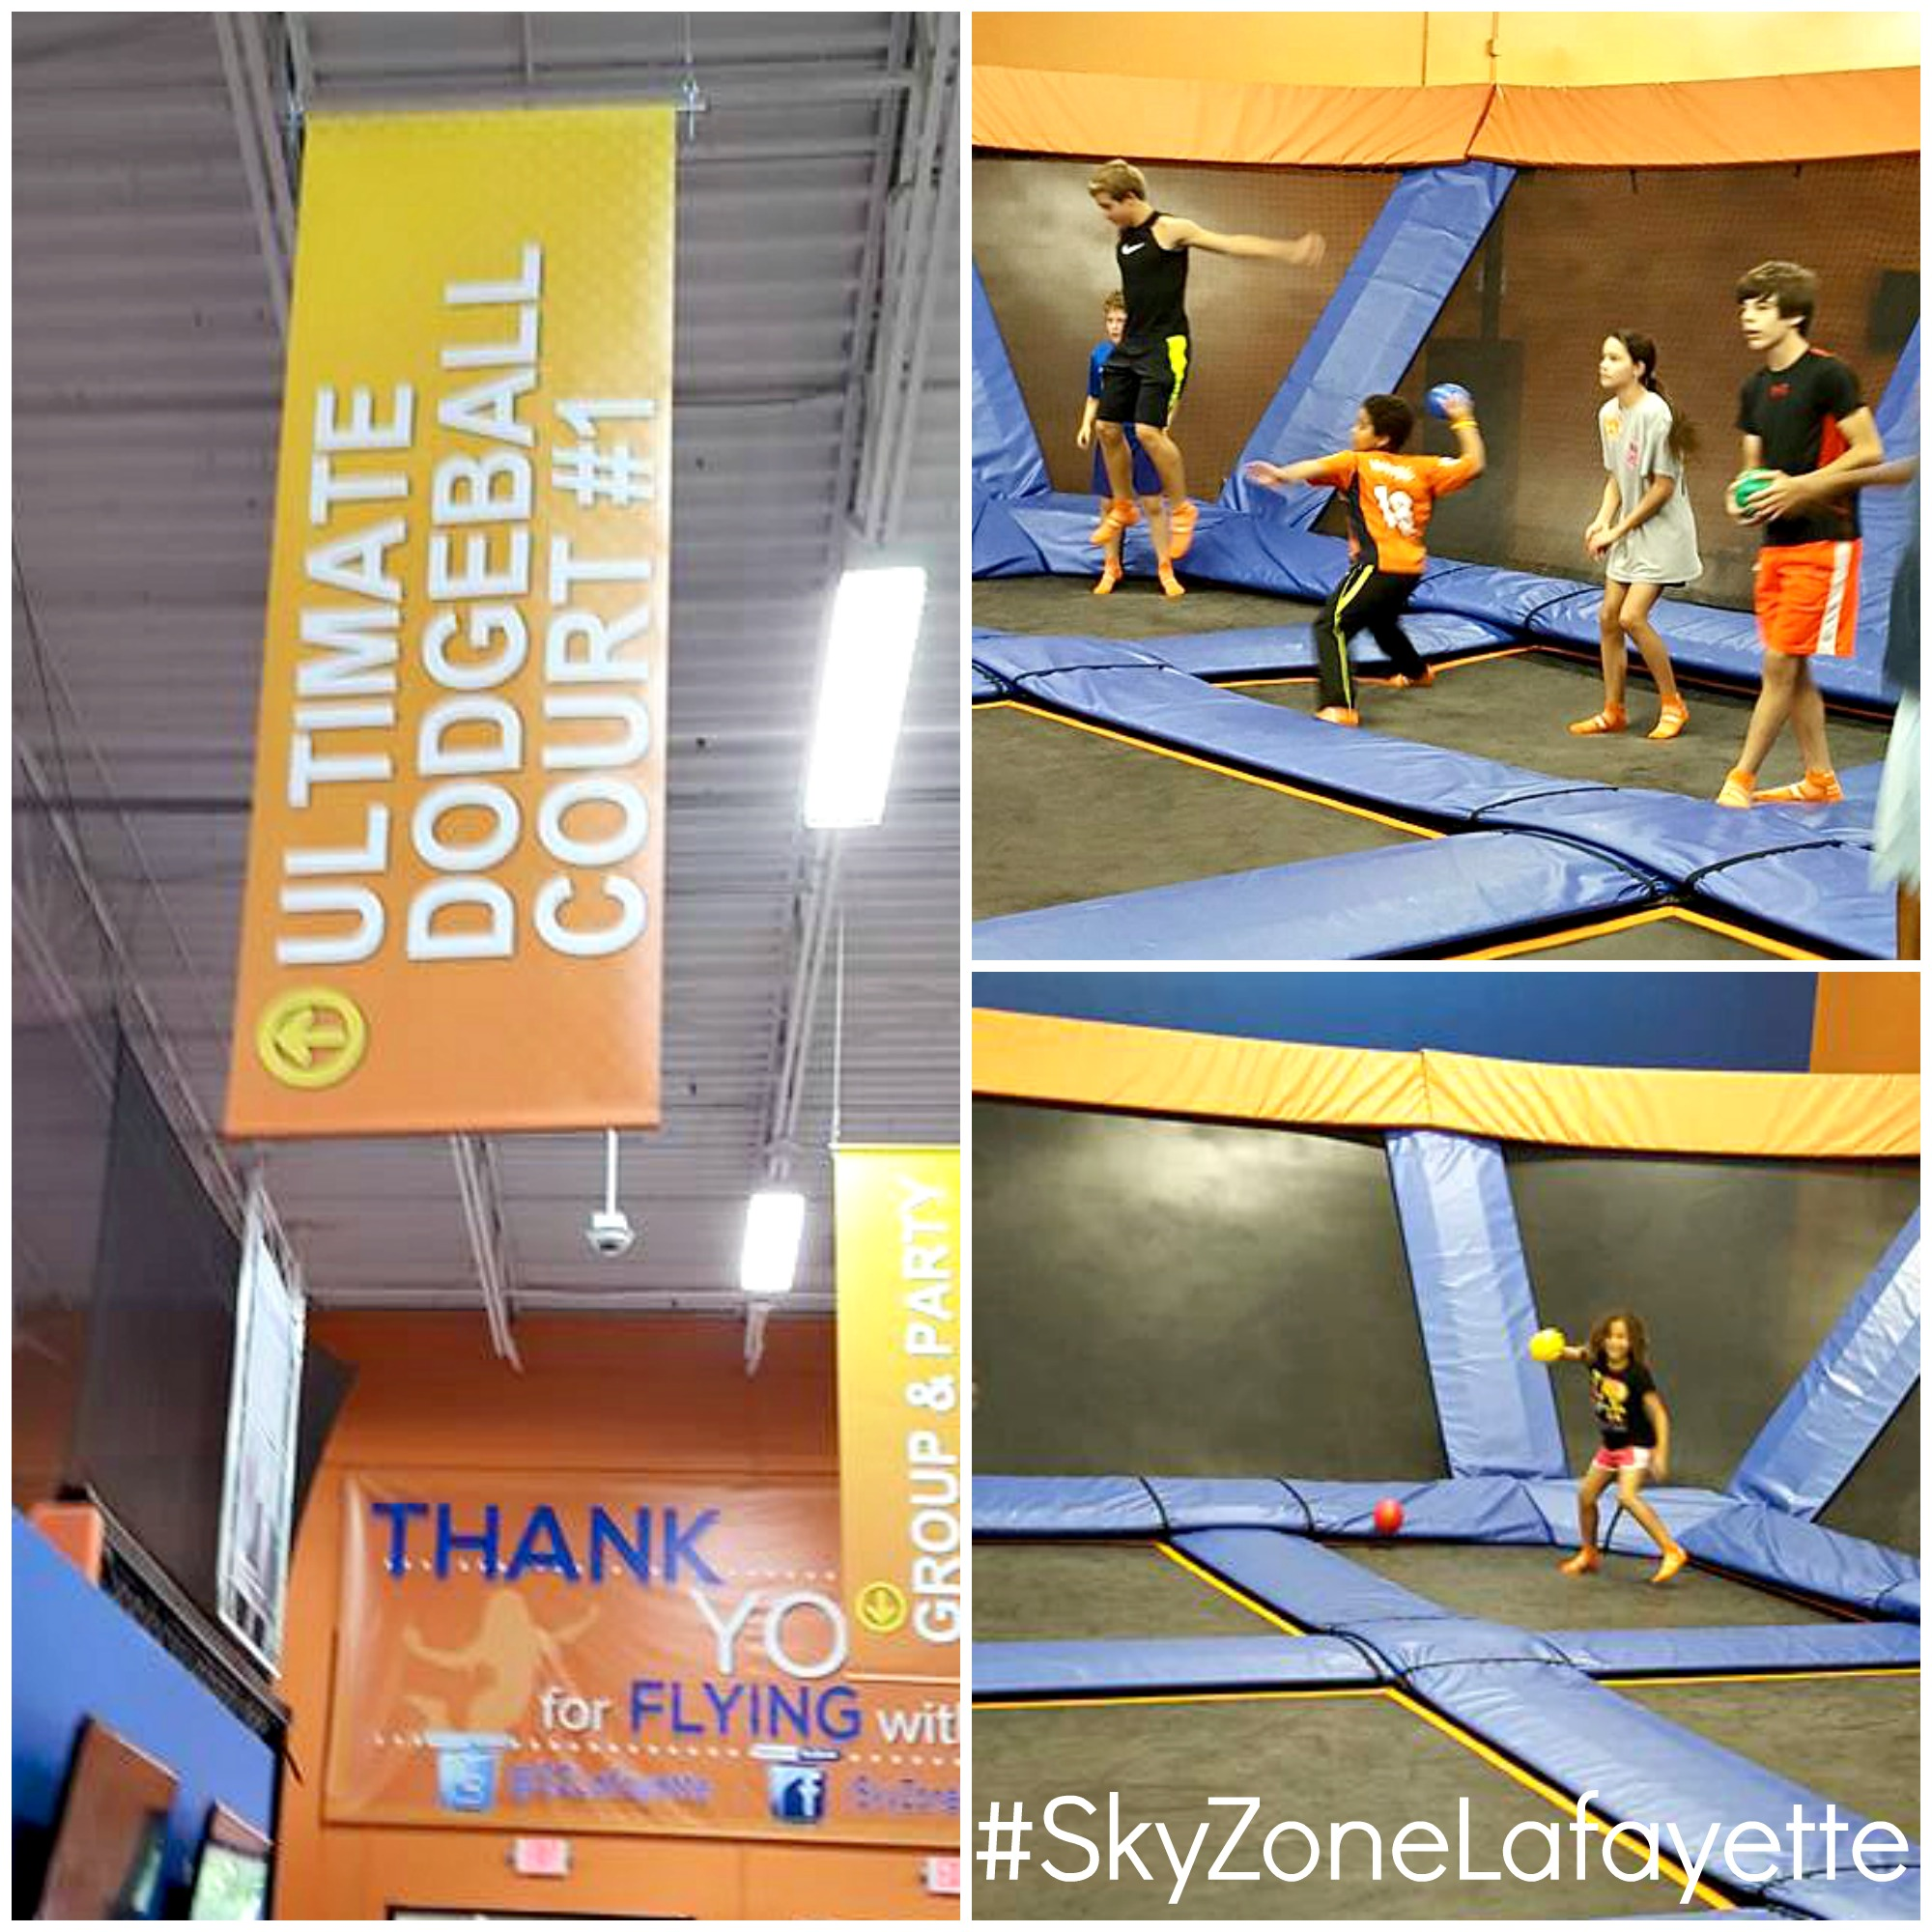 So Much Fun At Sky Zone Lafayette!  #SkyZoneLafayette